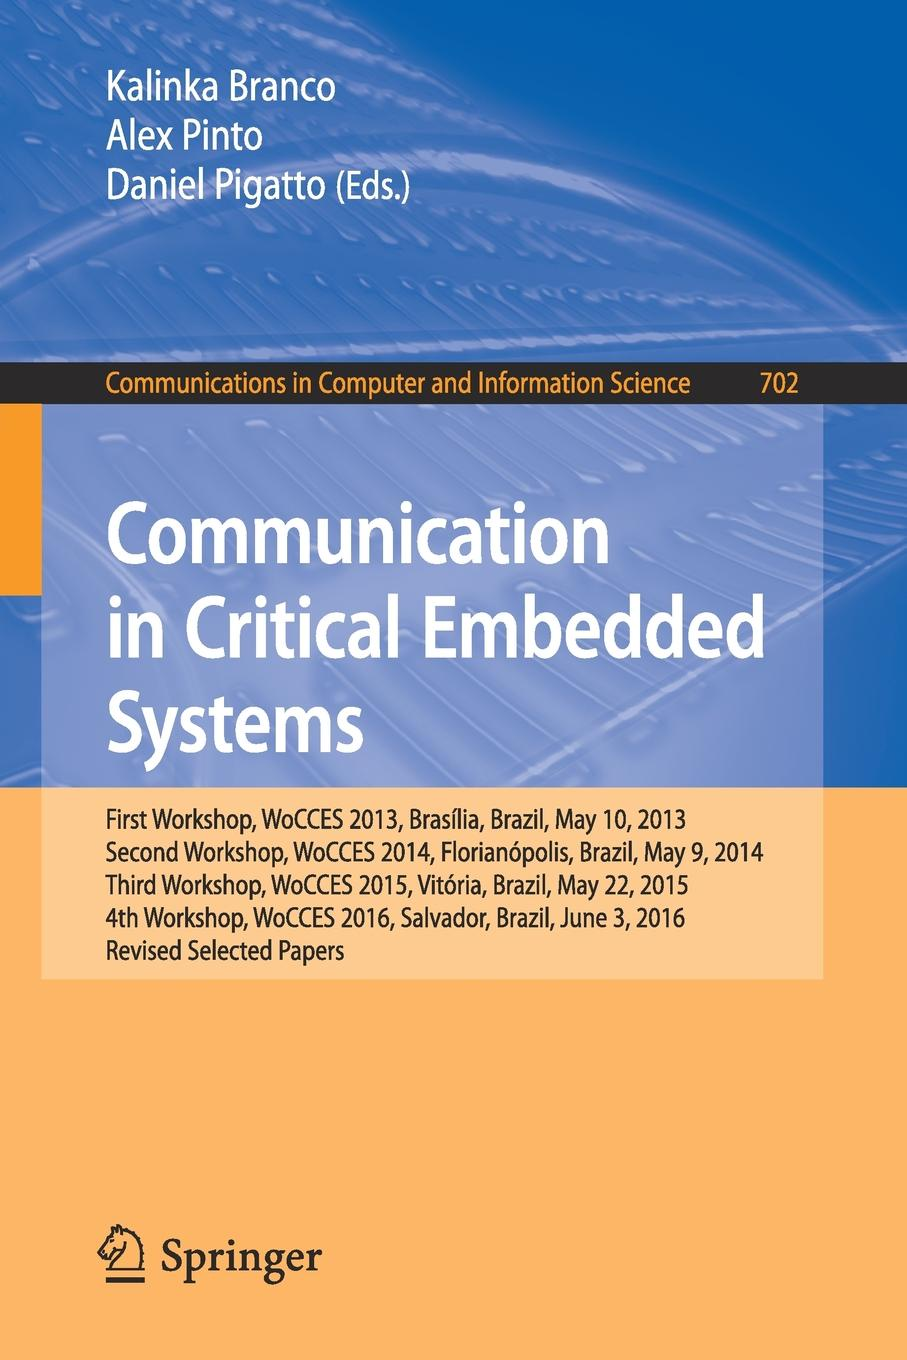 Communication in Critical Embedded Systems. First Workshop, WoCCES 2013, Brasilia, Brazil, May, 10, 2013, Second Workshop, WoCCES 2014, Florianopolis, Brazil, May 9, 2014, Third Workshop, WoCCES 2015, Vitoria, Brazil, May 22, 2015, 4th Workshop, W... devil s workshop